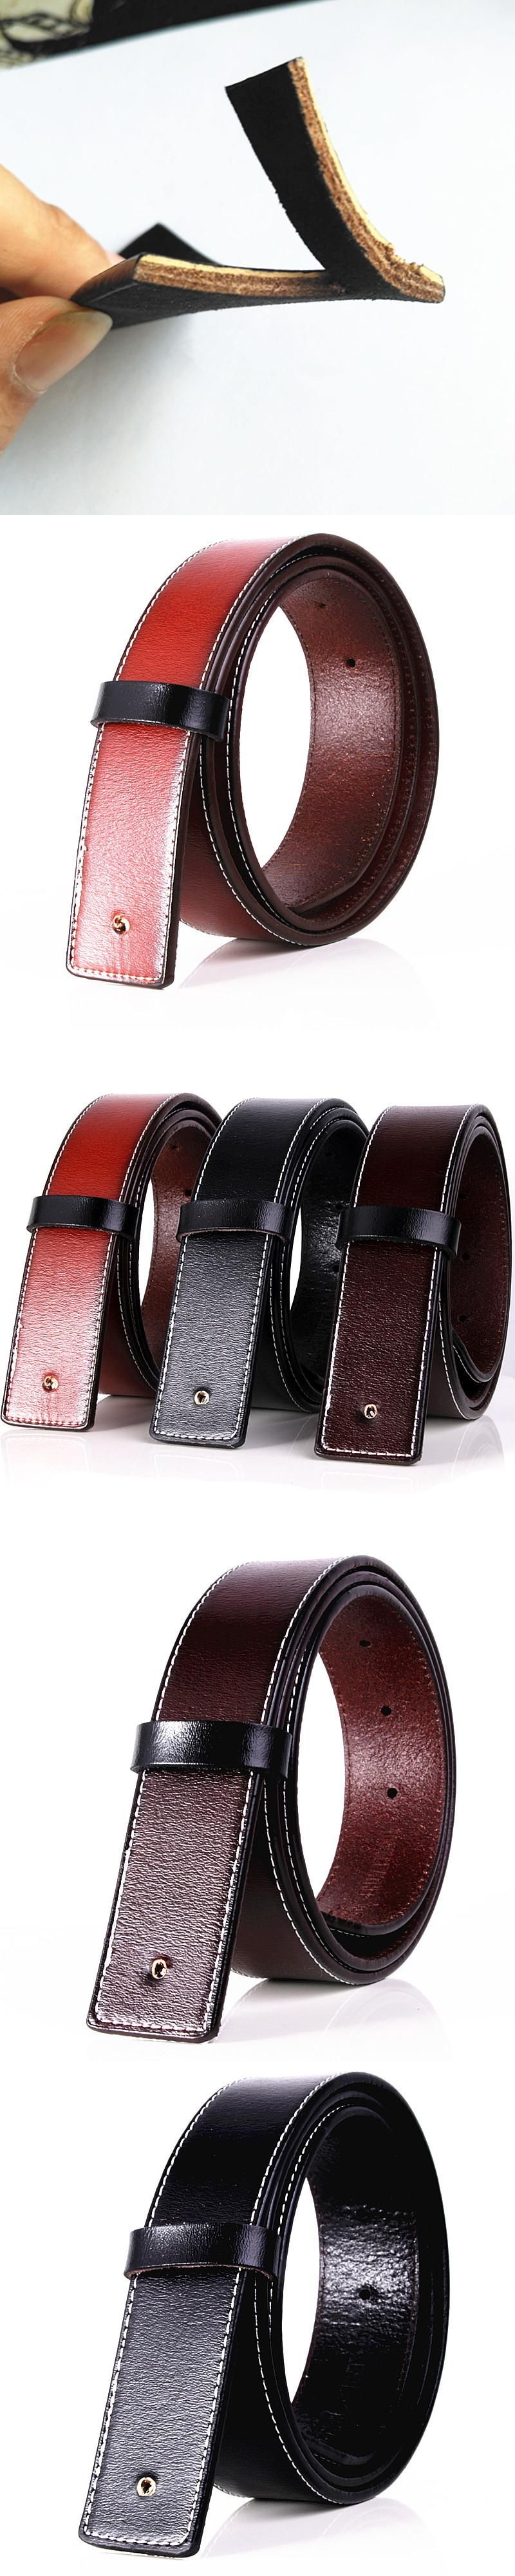 No Buckle 3.7cm Wide Real Genuine Leather Belts Body Strap Designer ... c8ae93431e7